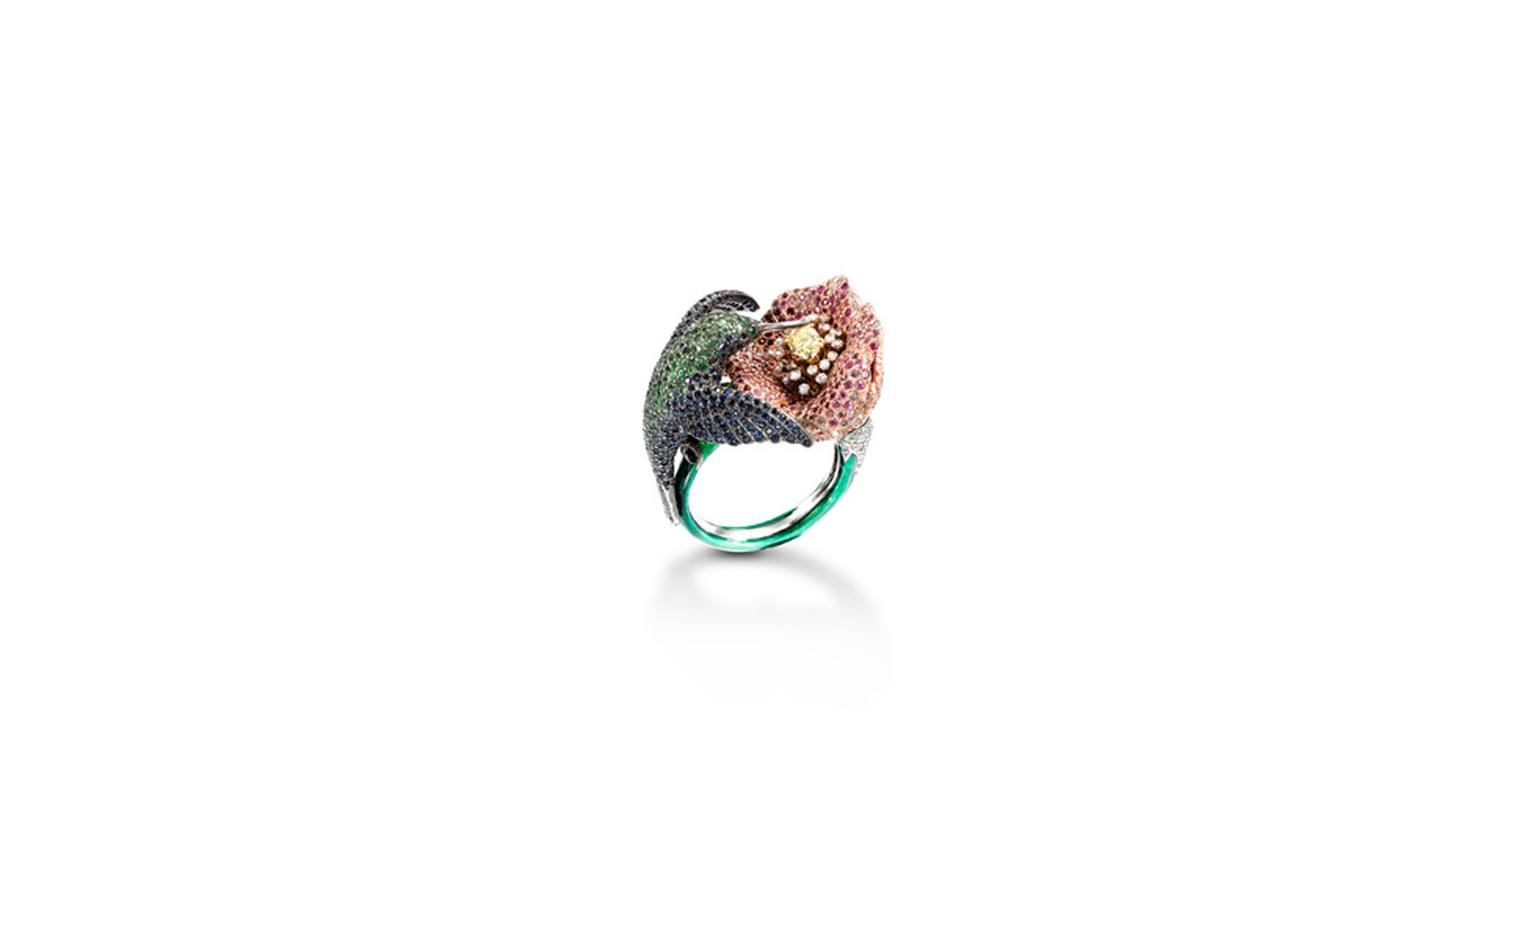 Pragnell humming bird ring